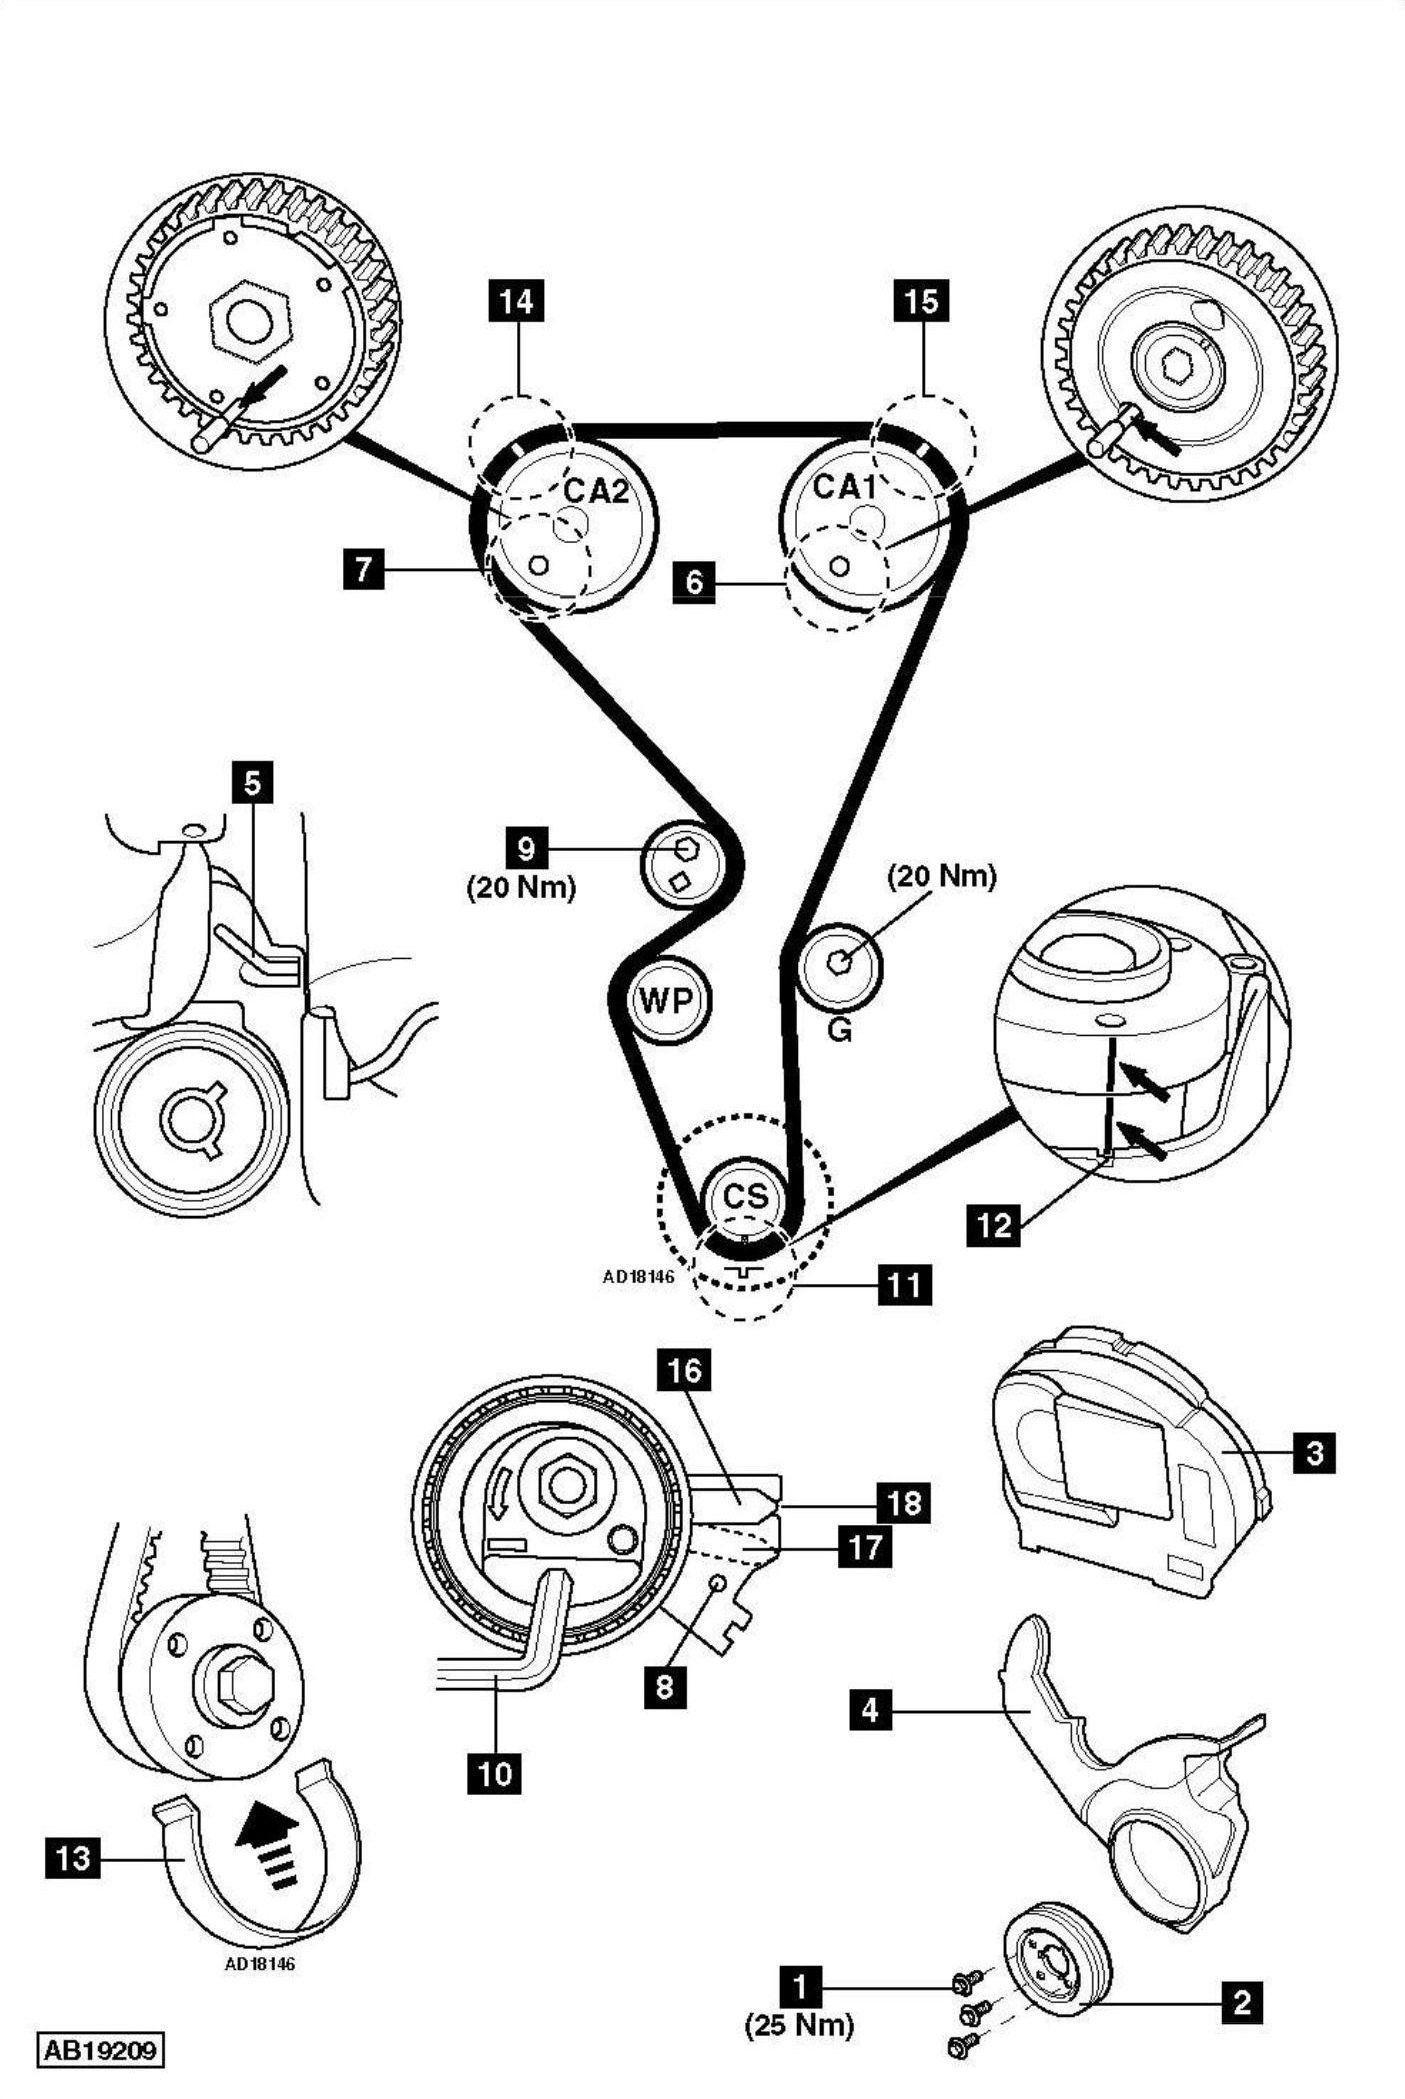 hight resolution of how to replace timing chain on peugeot 207 1 4 16v 2006 rover v8 engine rover